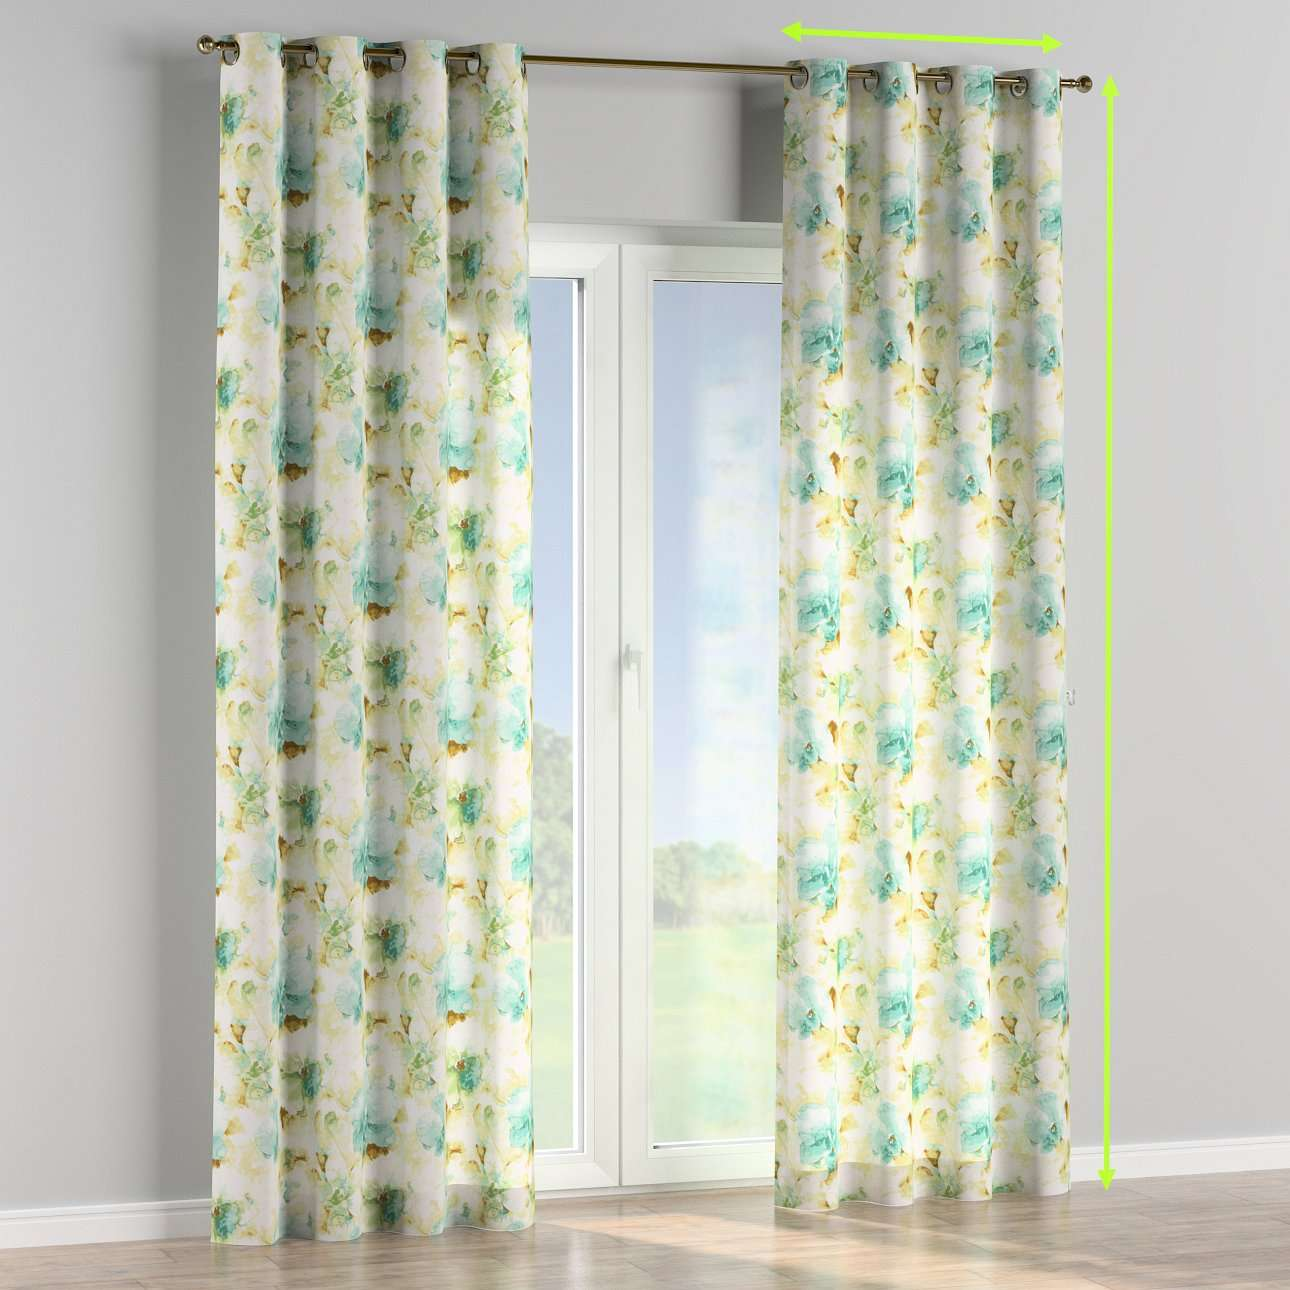 Eyelet curtains in collection Acapulco, fabric: 141-35